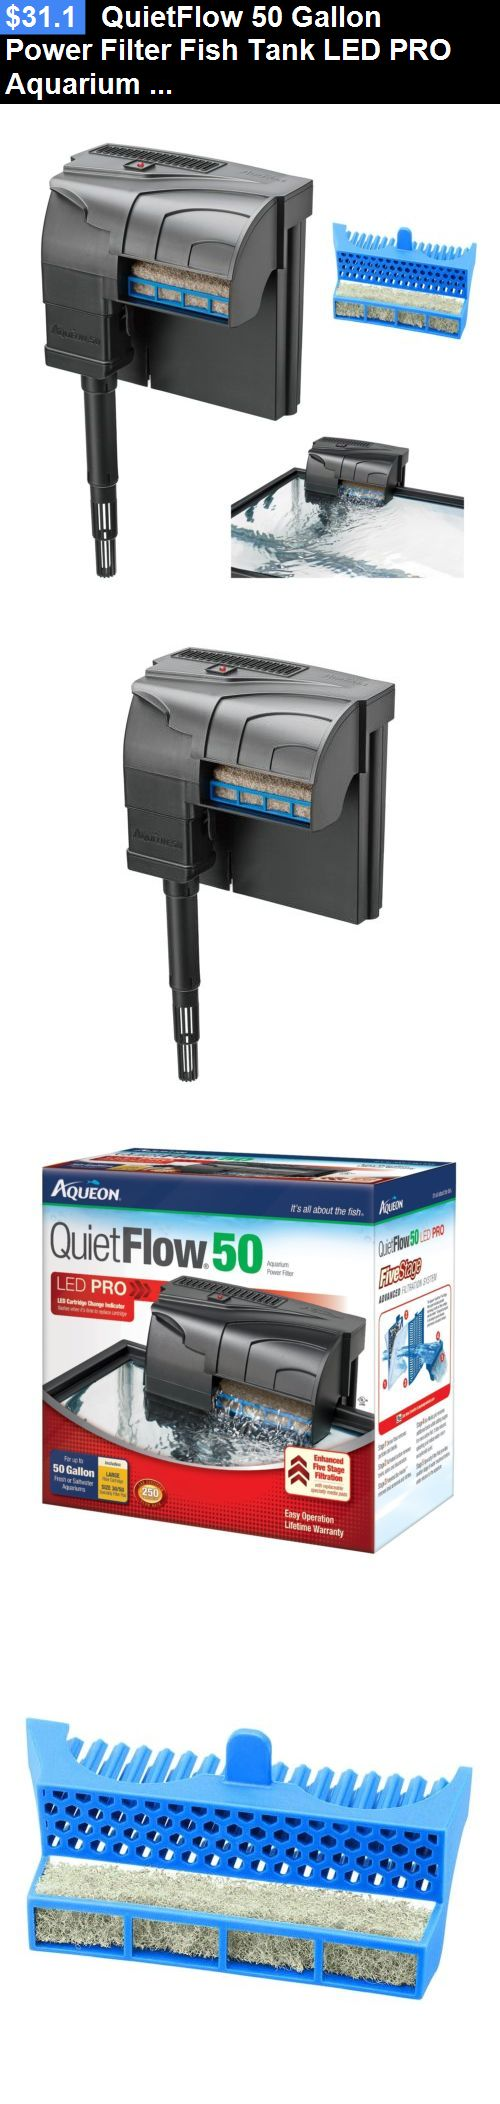 Animals Fish And Aquariums: Quietflow 50 Gallon Power Filter Fish Tank Led Pro Aquarium Clean Water 250 Gph BUY IT NOW ONLY: $31.1